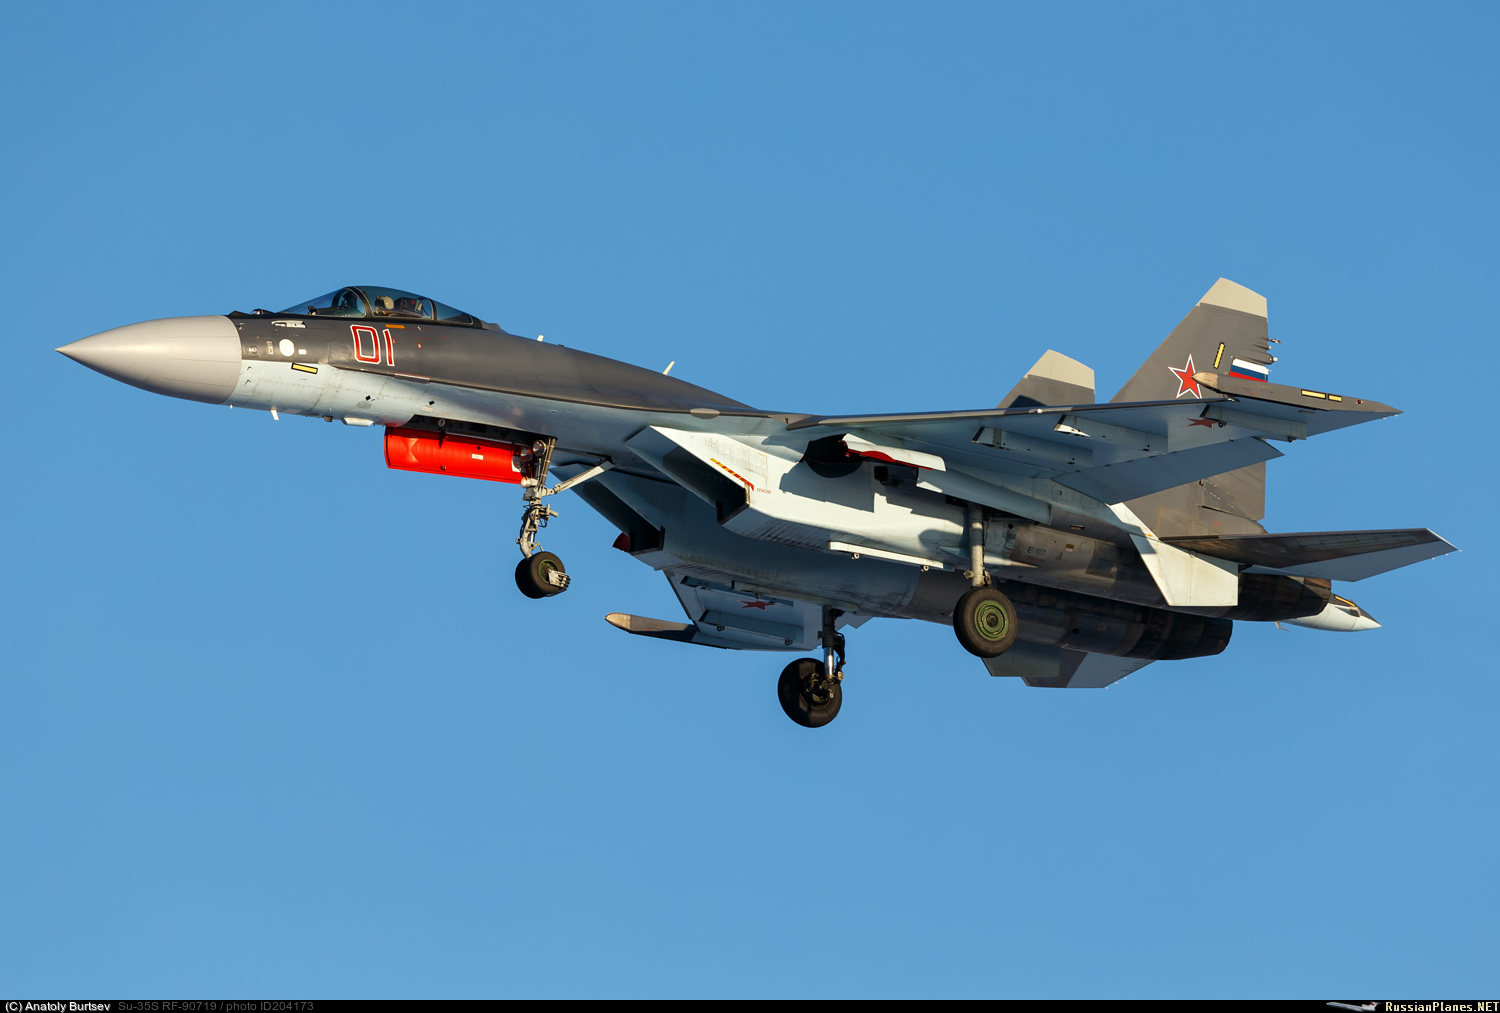 http://russianplanes.net/images/to205000/204173.jpg